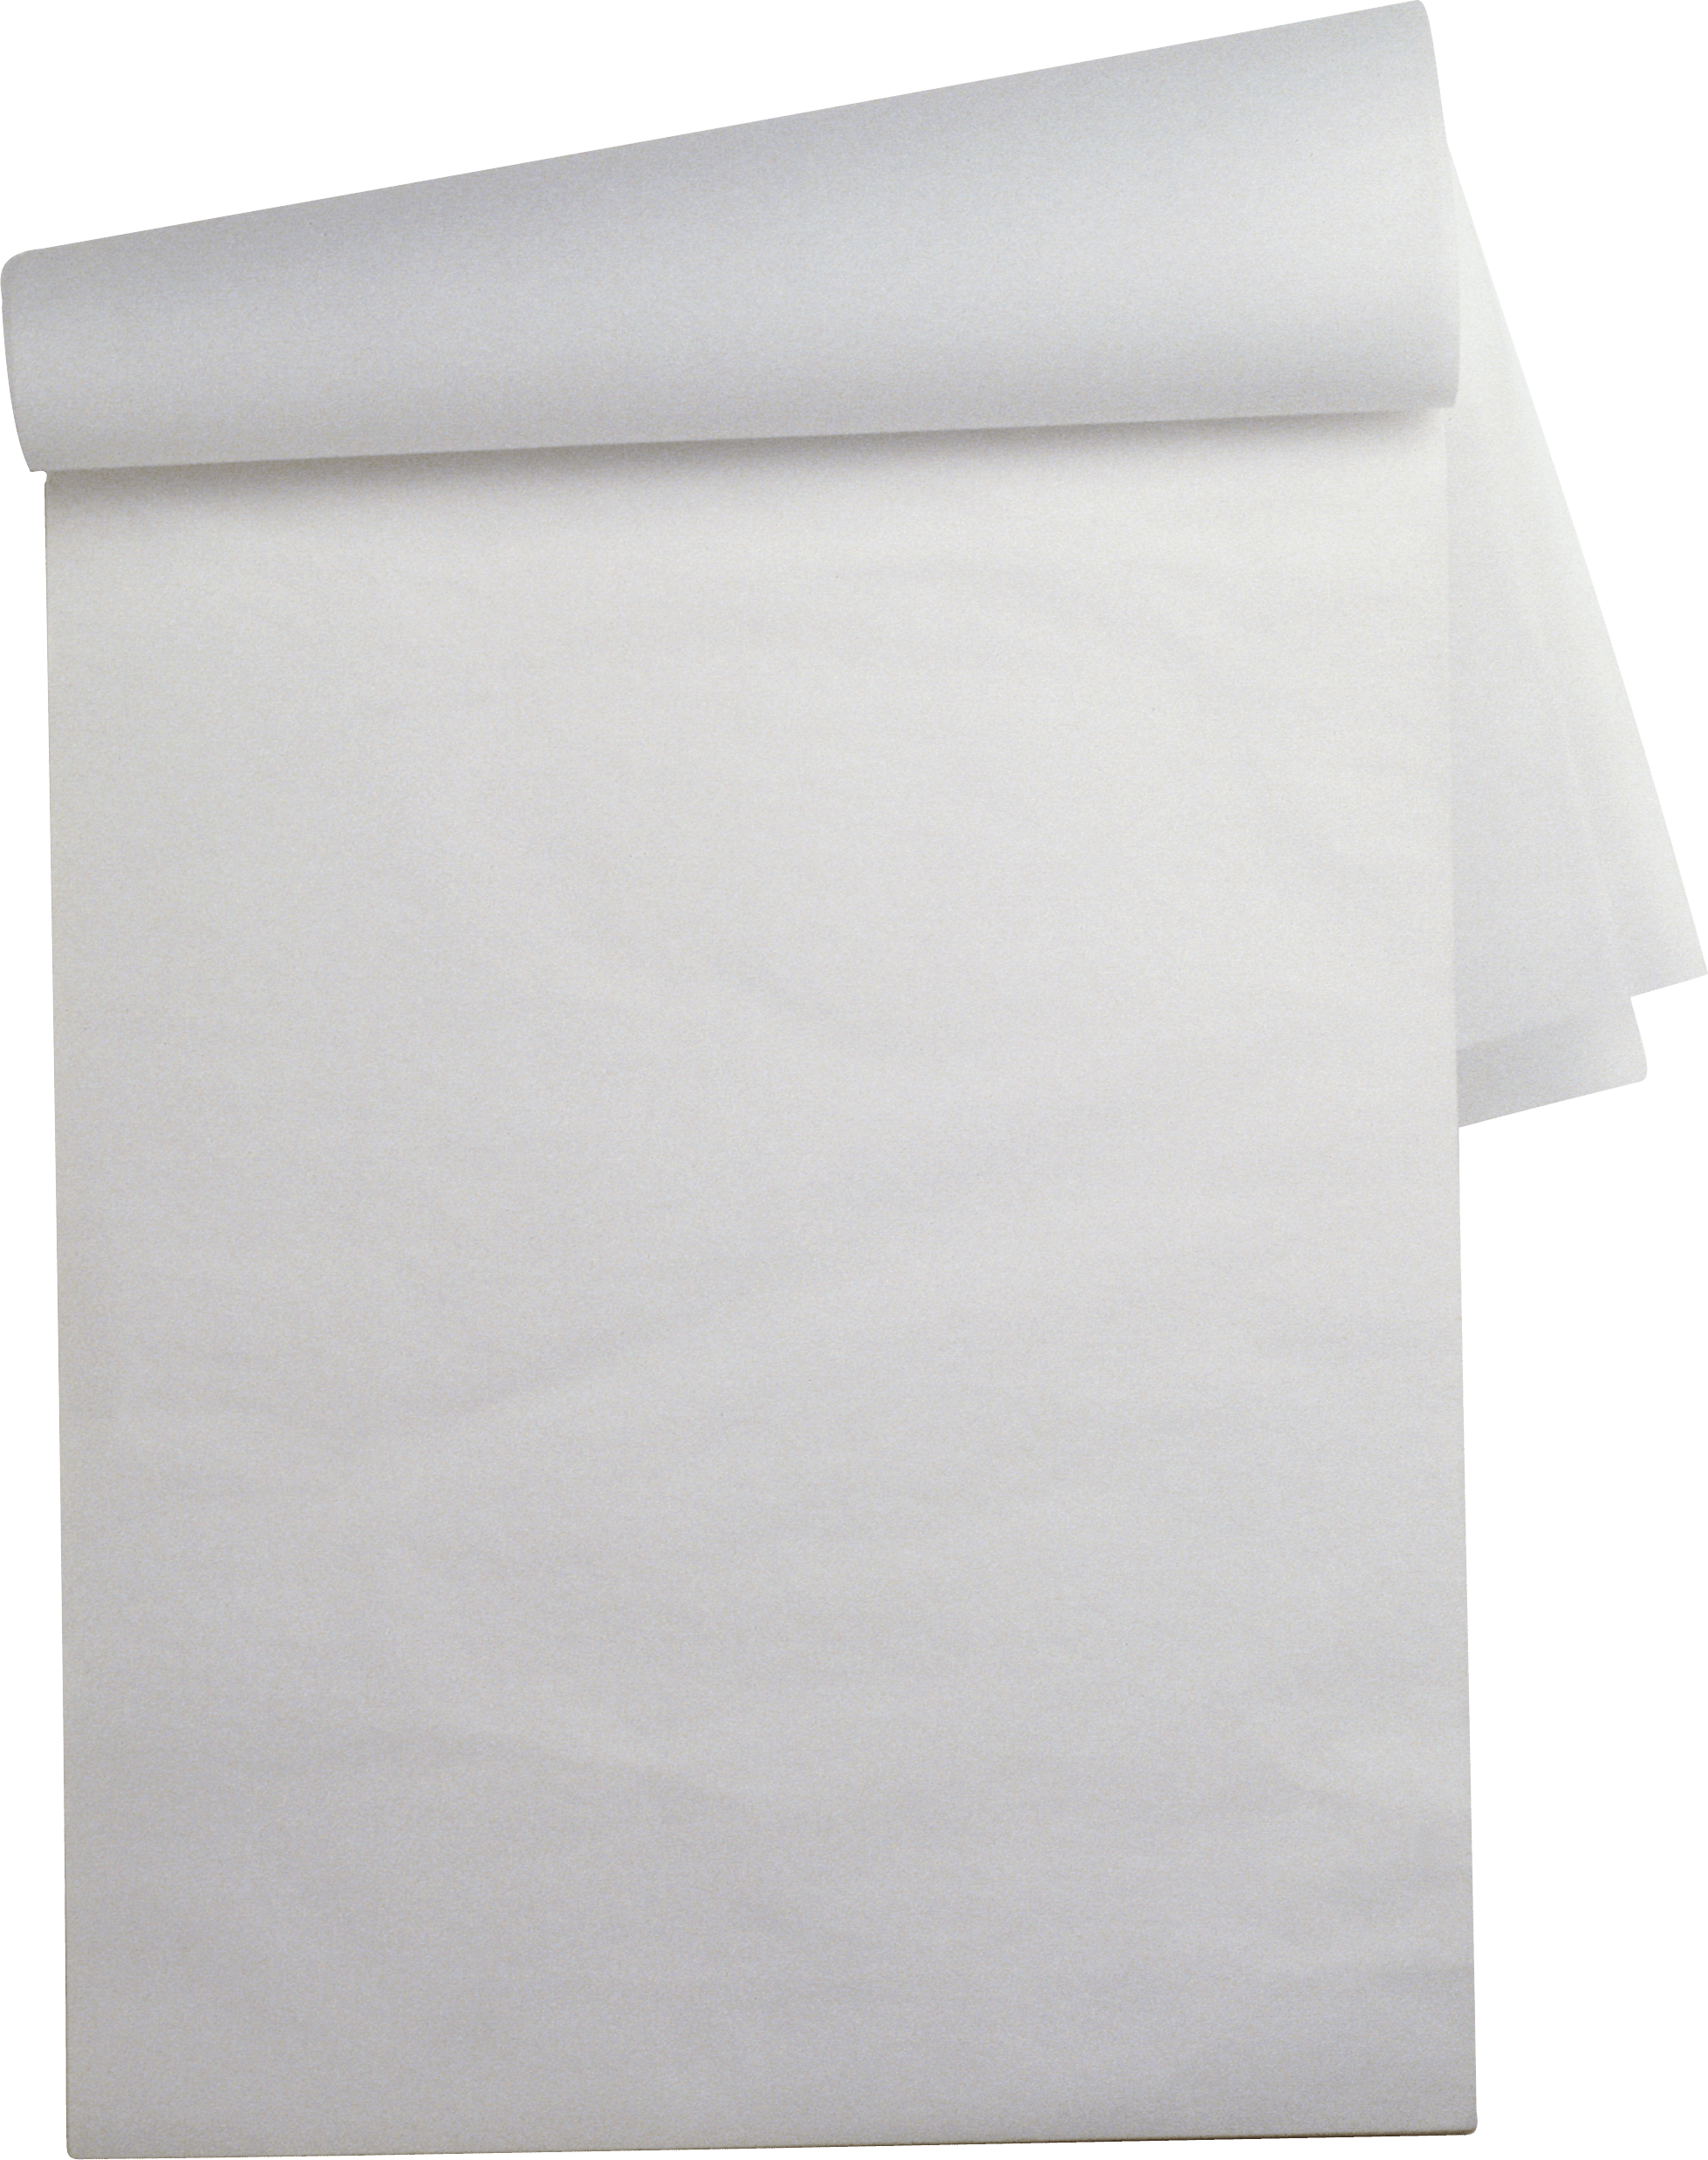 White Folded Paper Sheet transparent PNG - StickPNG